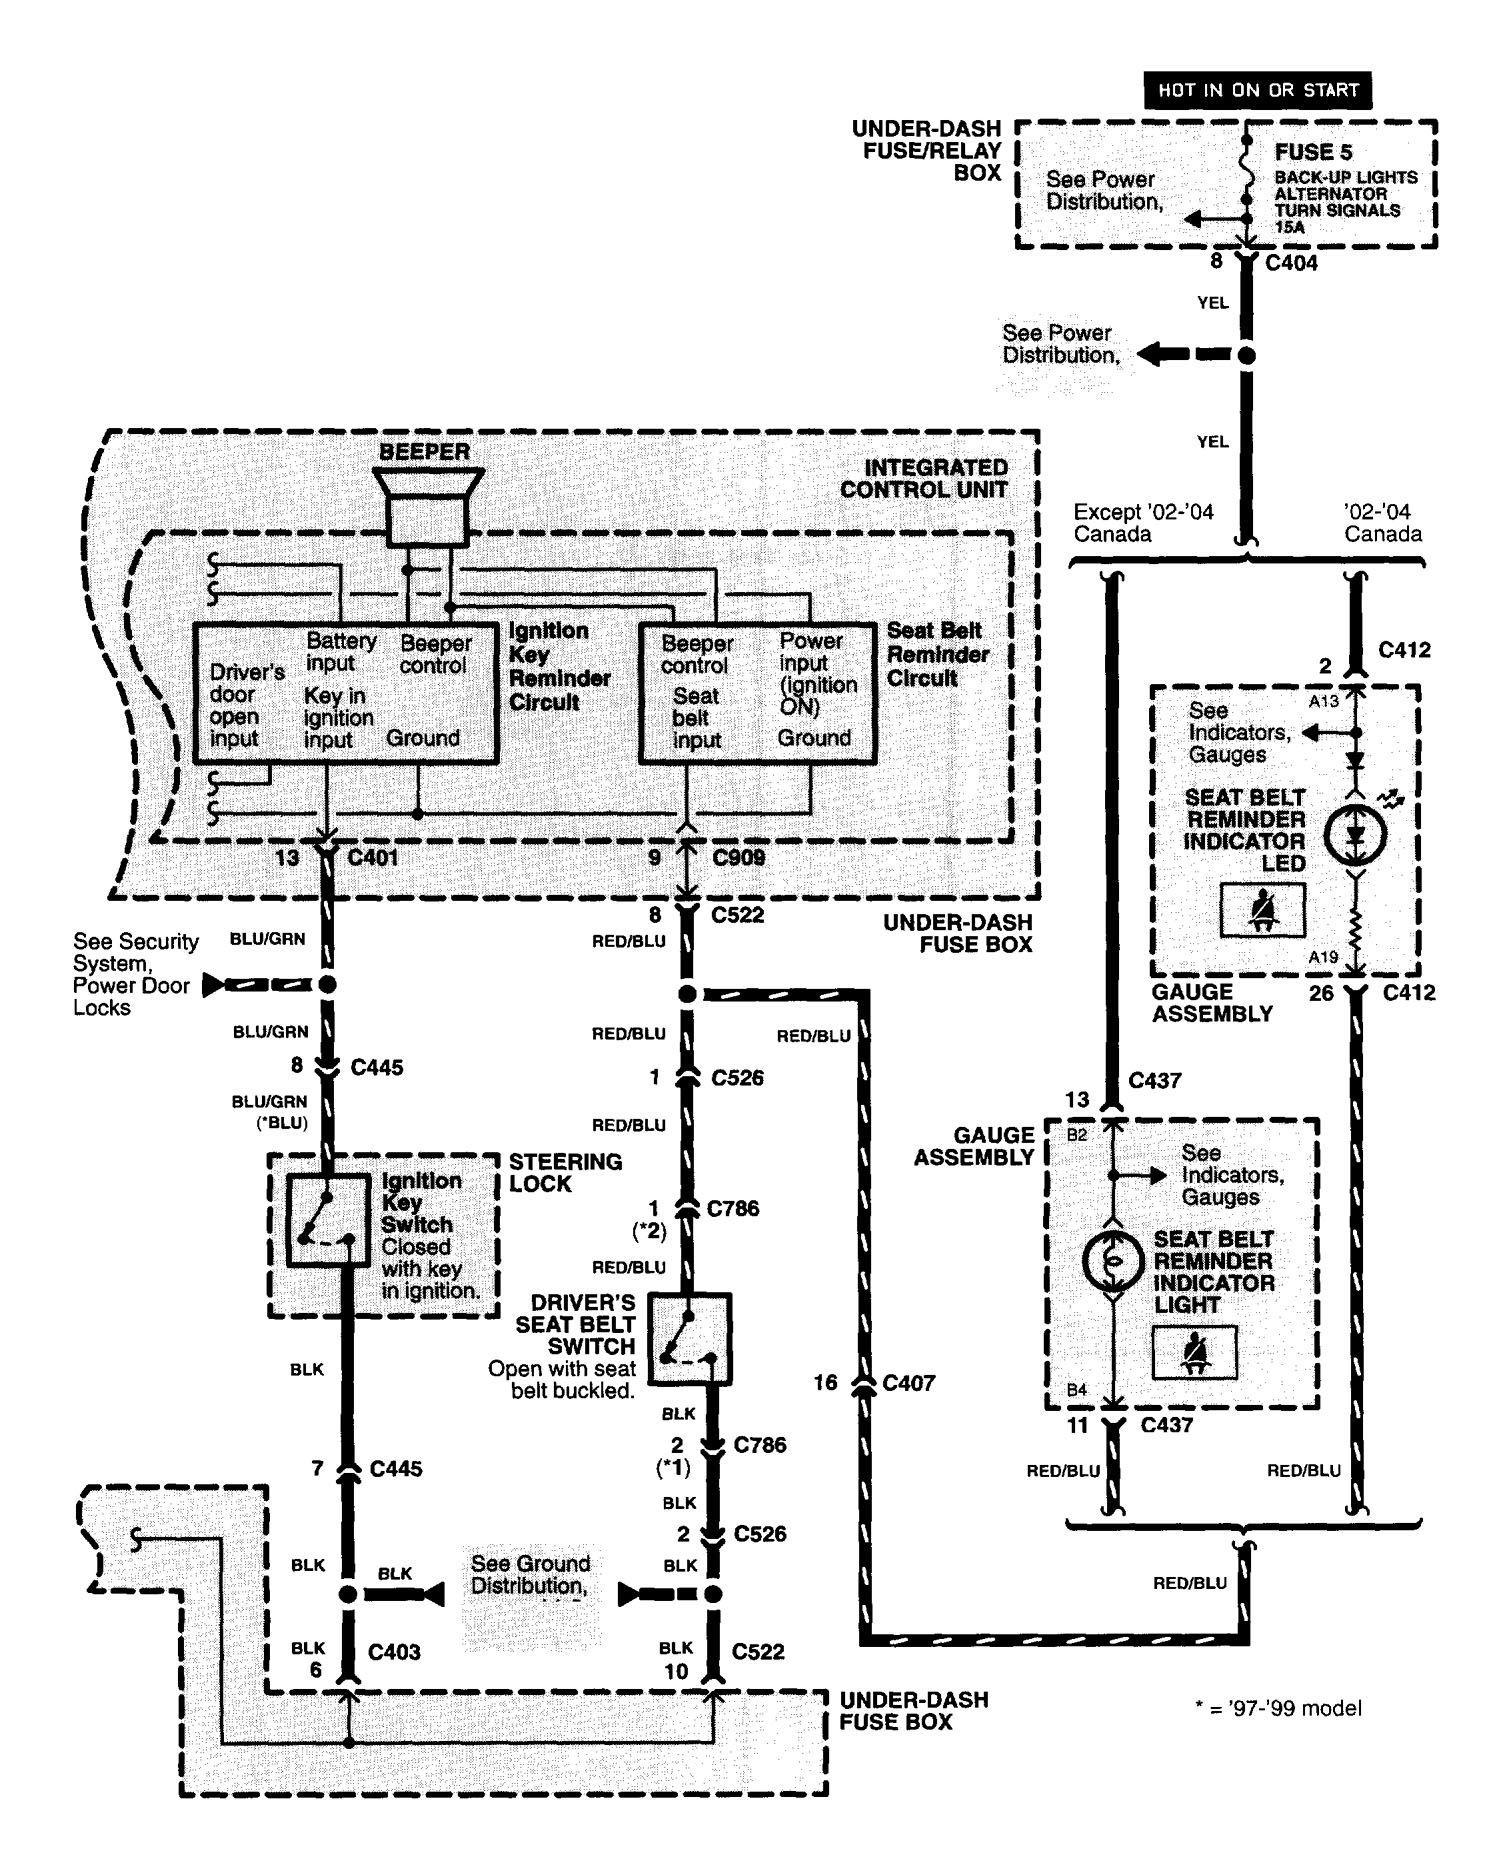 2005 Fleetwood Wiring Diagram - Fusebox and Wiring Diagram cable-taxi -  cable-taxi.crealla.it